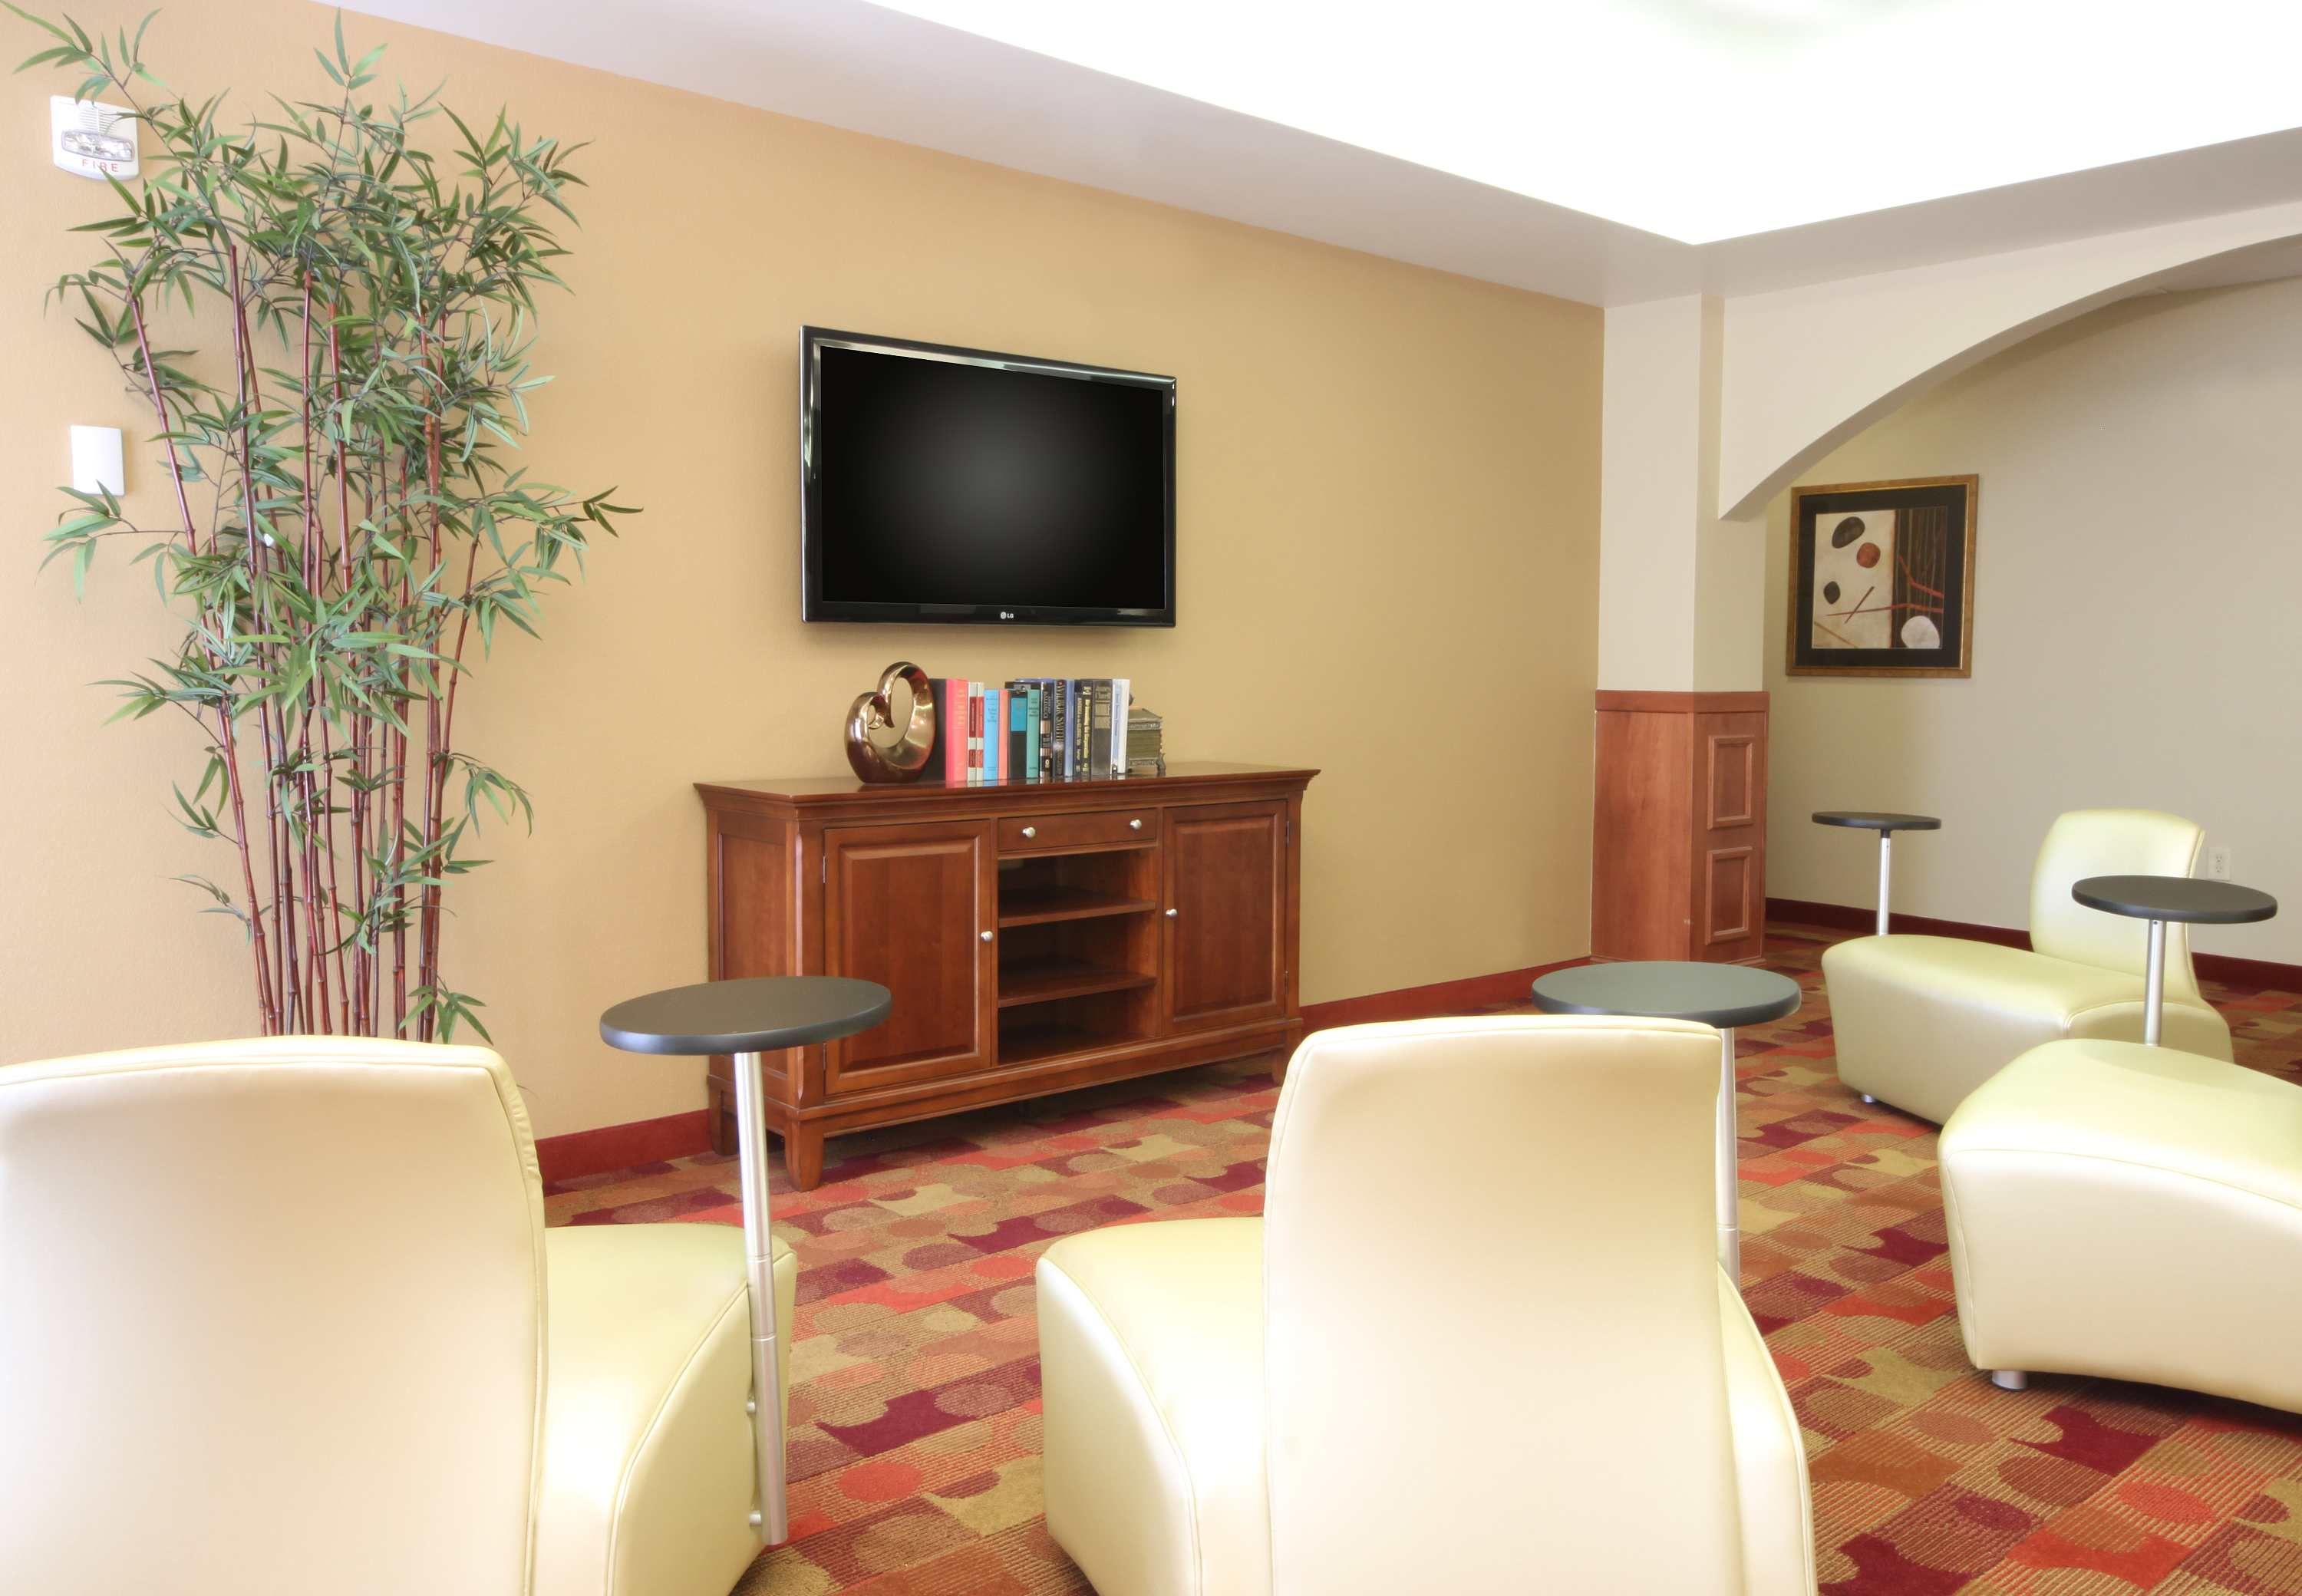 TownePlace Suites by Marriott Lubbock image 9